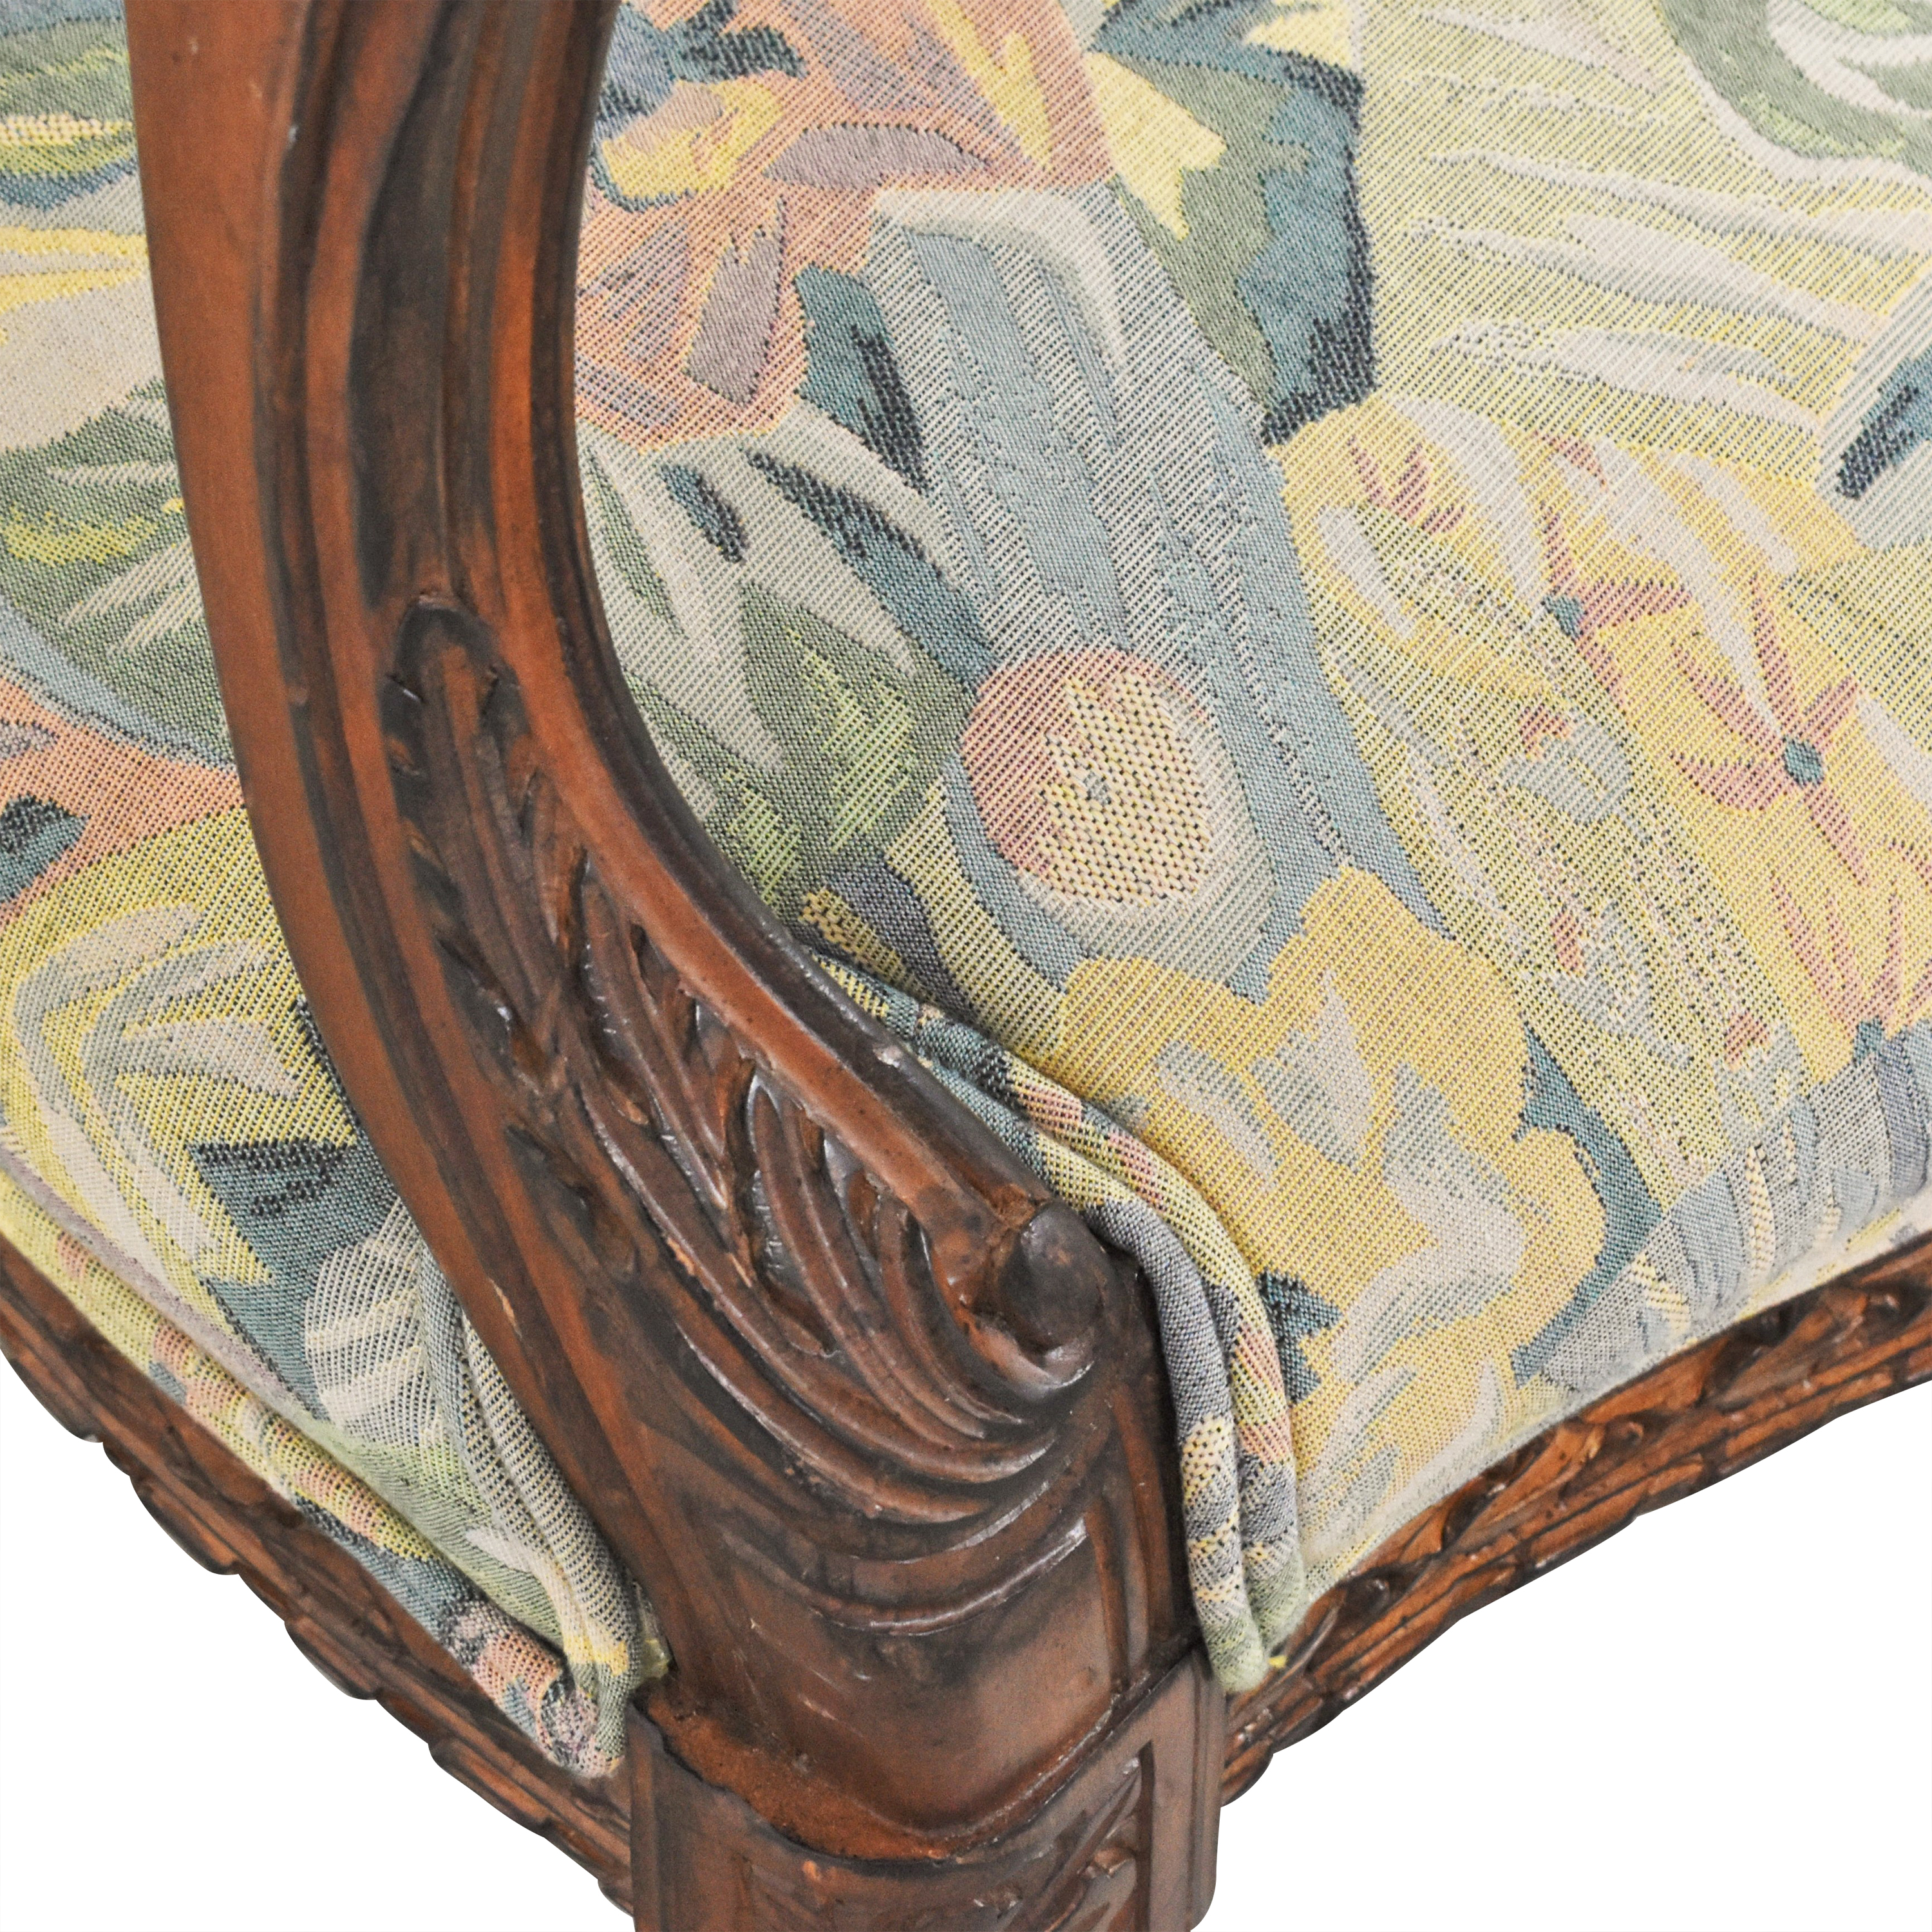 Meyer Gunther Martini Meyer Gunther Martini Carved Arm Chairs discount